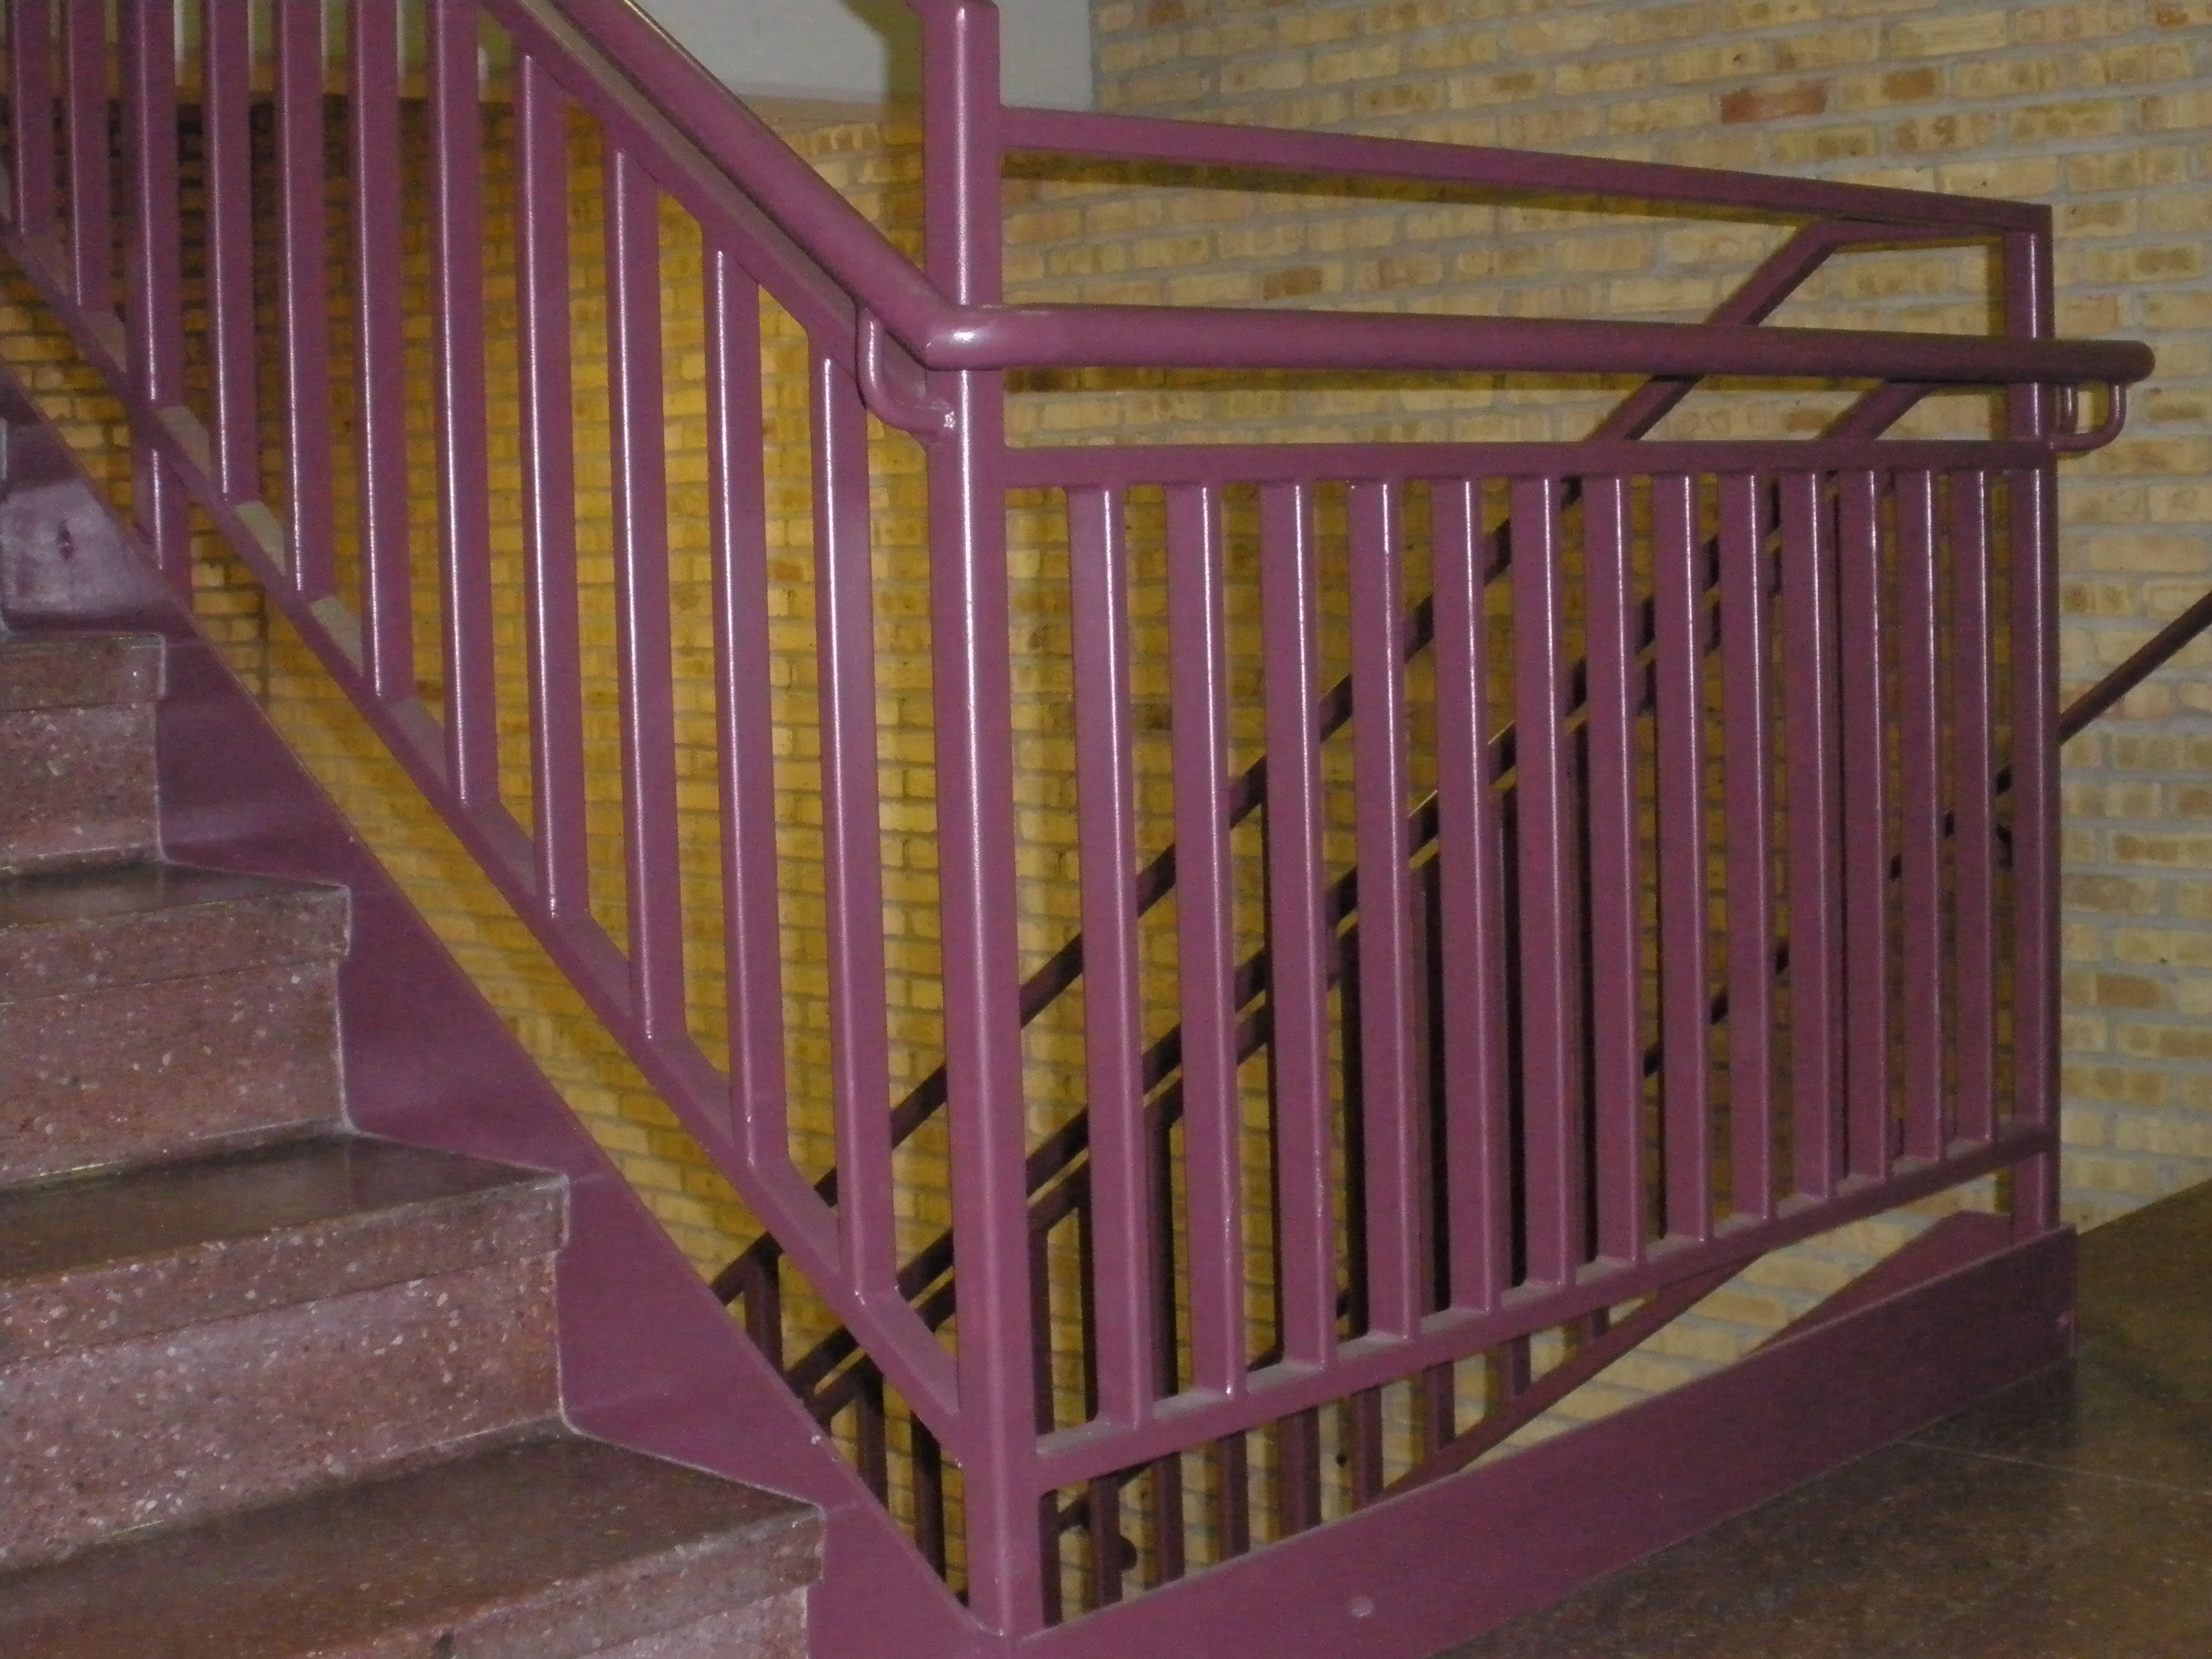 Railings Project - North Chicago Iron Works, Inc.